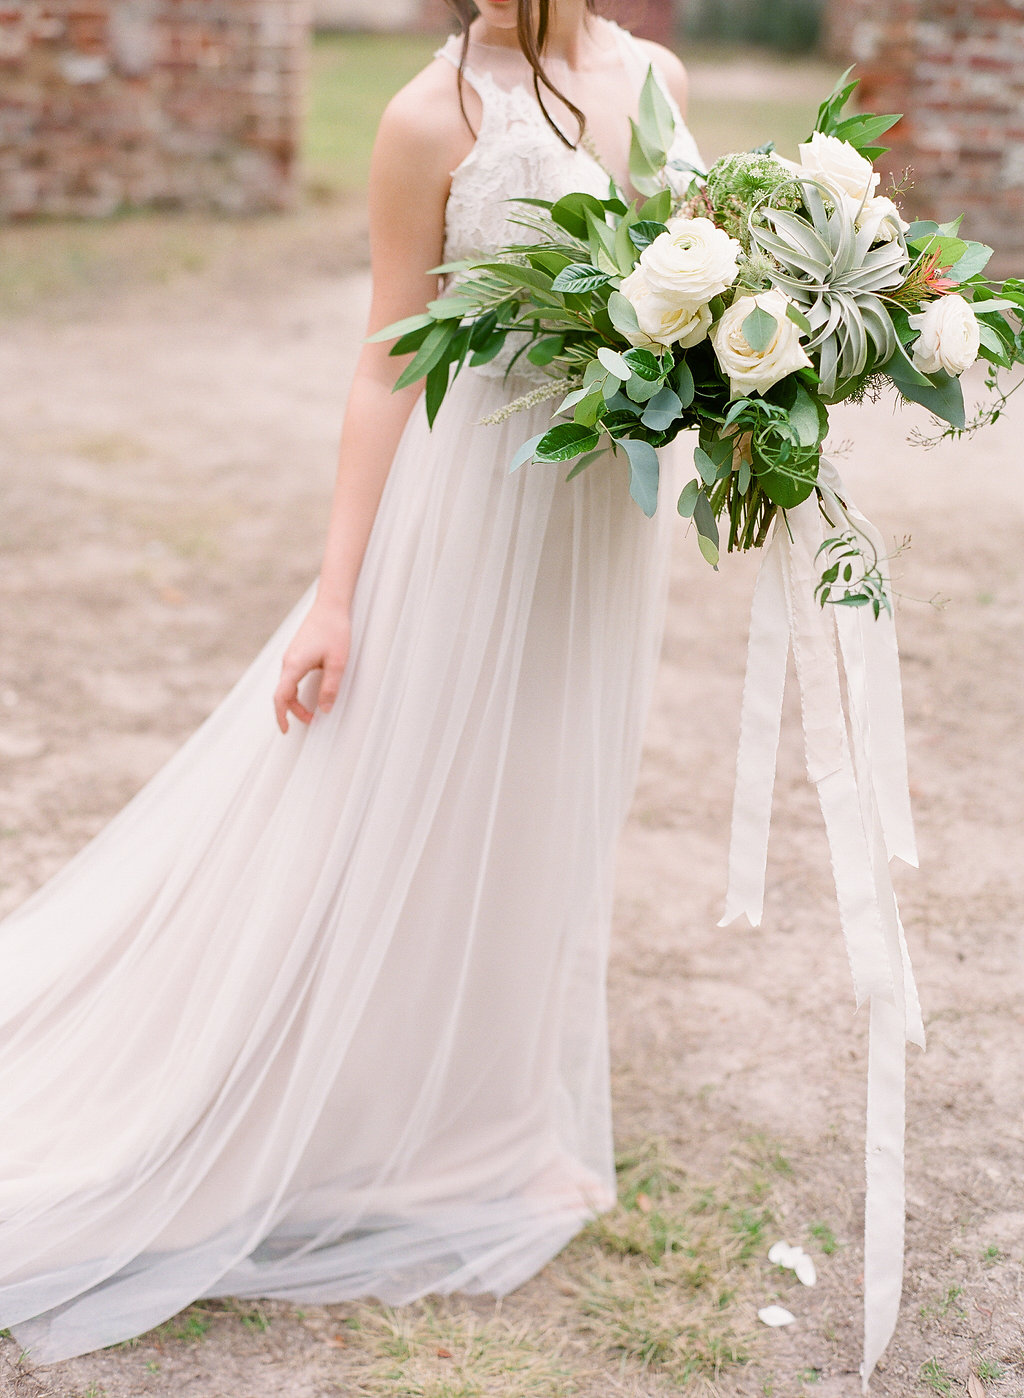 the-happy-bloom-photography-ti-adora-7553-ivory-and-beau-bridal-boutique-savannah-wedding-dresses-old-sheldon-ruins-savannah-wedding-planner-savannah-event-designer-savannah-weddings-savannah-film-photographer-savannah-photography-workshop-11.jpg